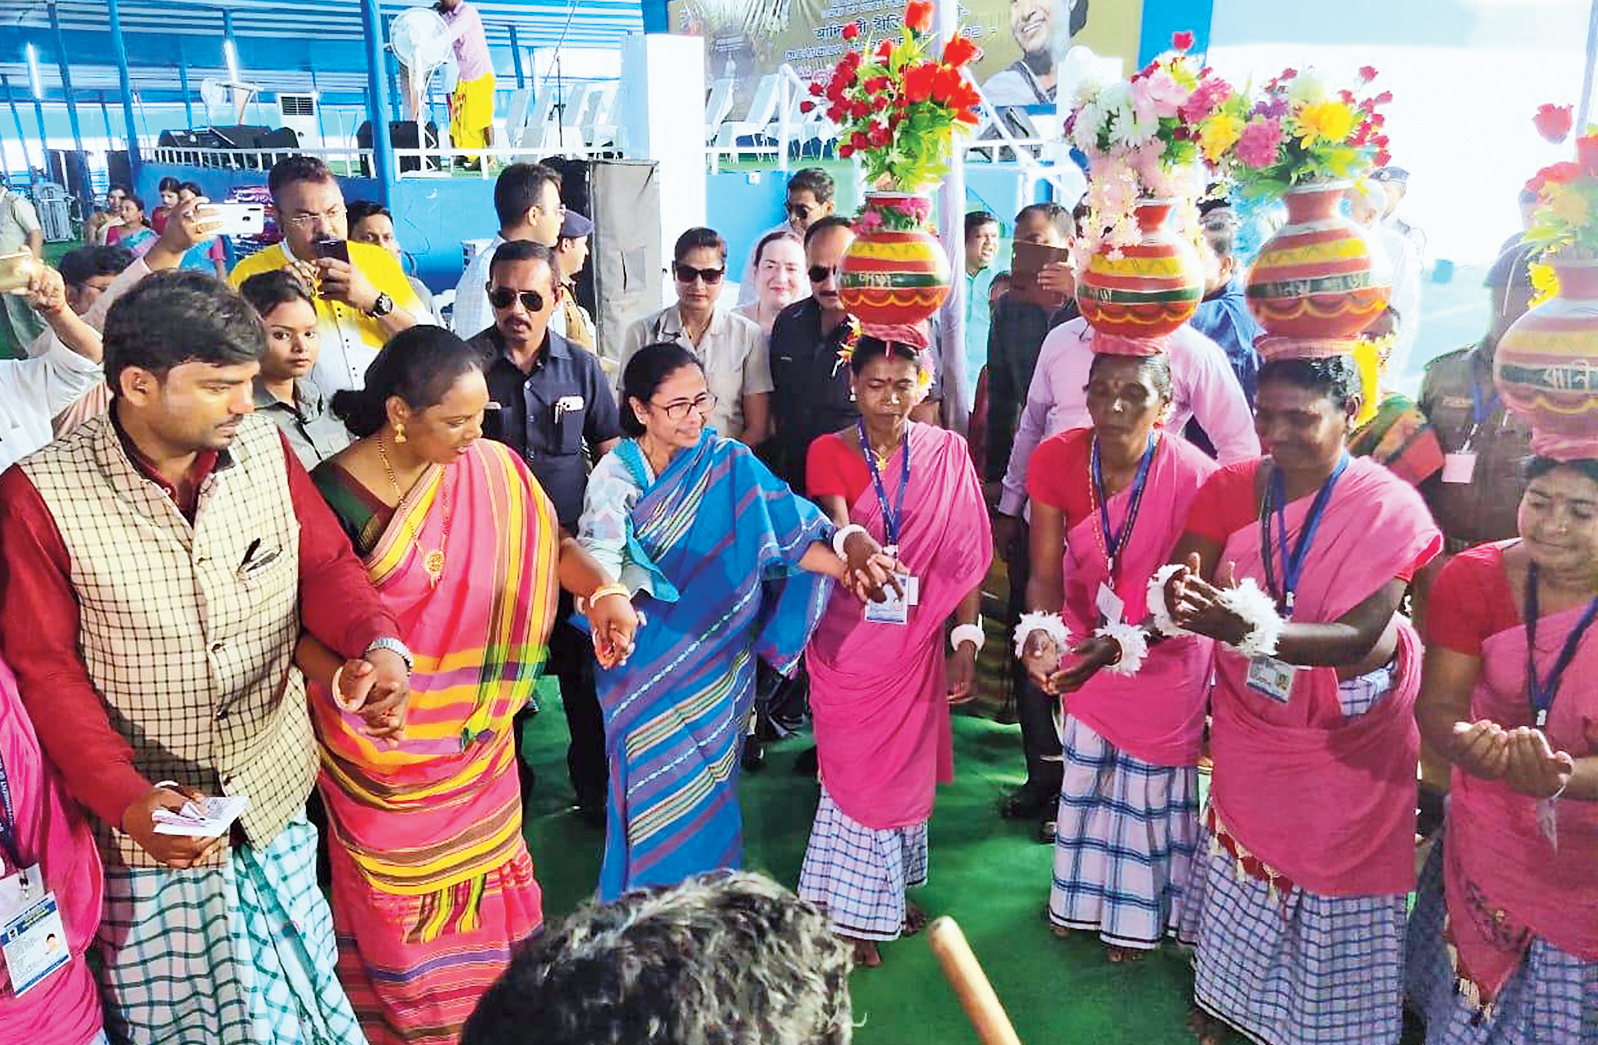 Mamata Banerjee dances with tribal women at the mass marriage ceremony in Malda's Gazole on Thursday.